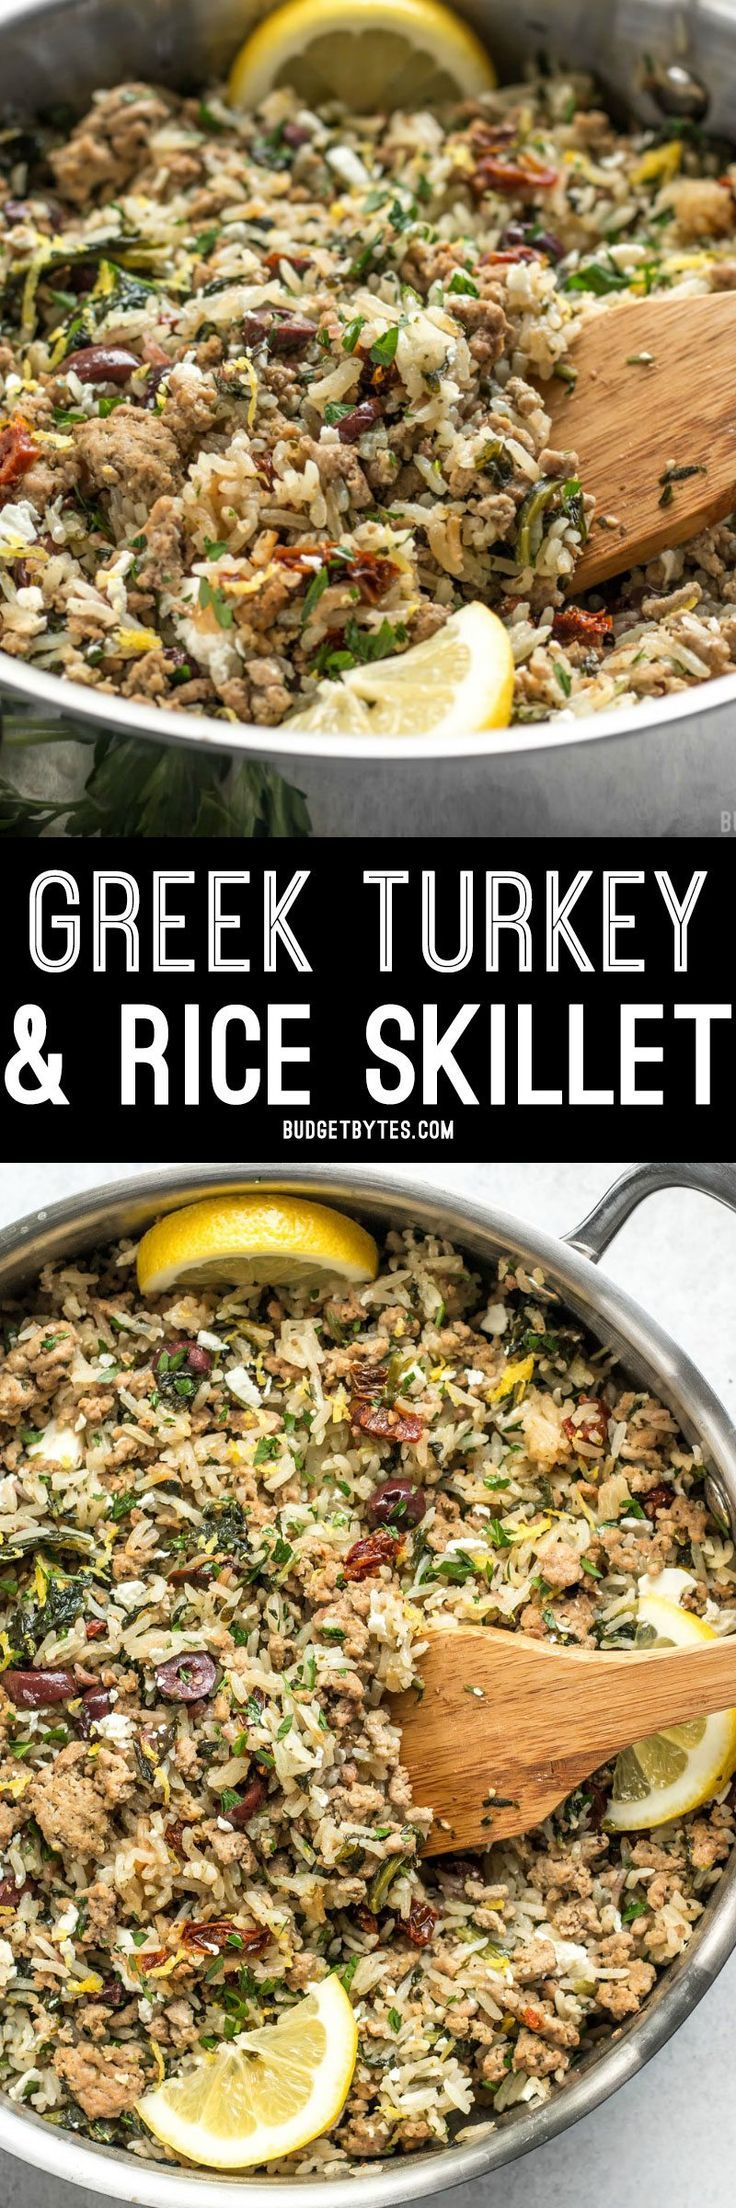 Everything cooks together in one pot for this fast and easy Greek Turkey and Rice Skillet, creating big flavor without a lot of fuss.